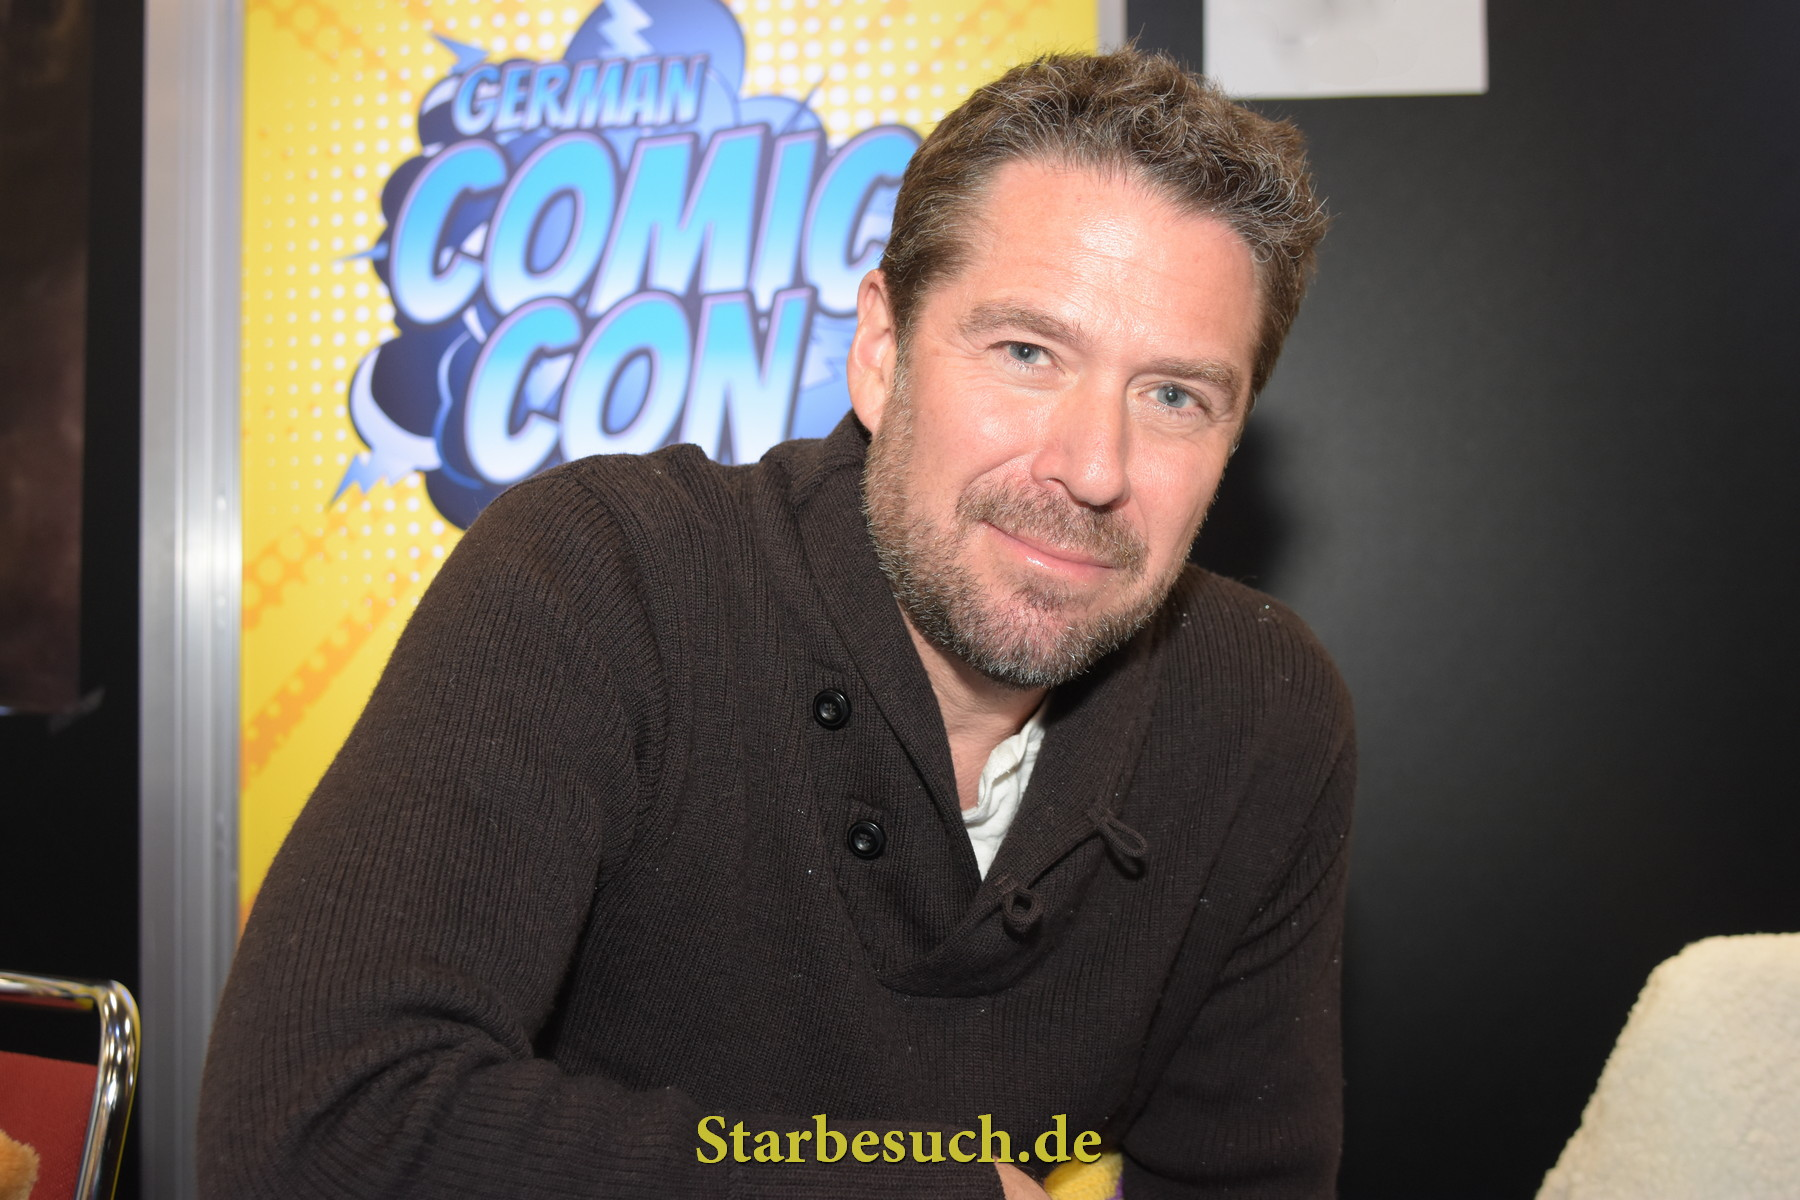 Dortmund, Germany - December 9th 2017: US Actor Alexis Denisof (* 1966, Buffy The Vampire Slayer, Angel, Guardians of the Galaxy, The Avengers, How I Met Your Mother) at German Comic Con Dortmund.